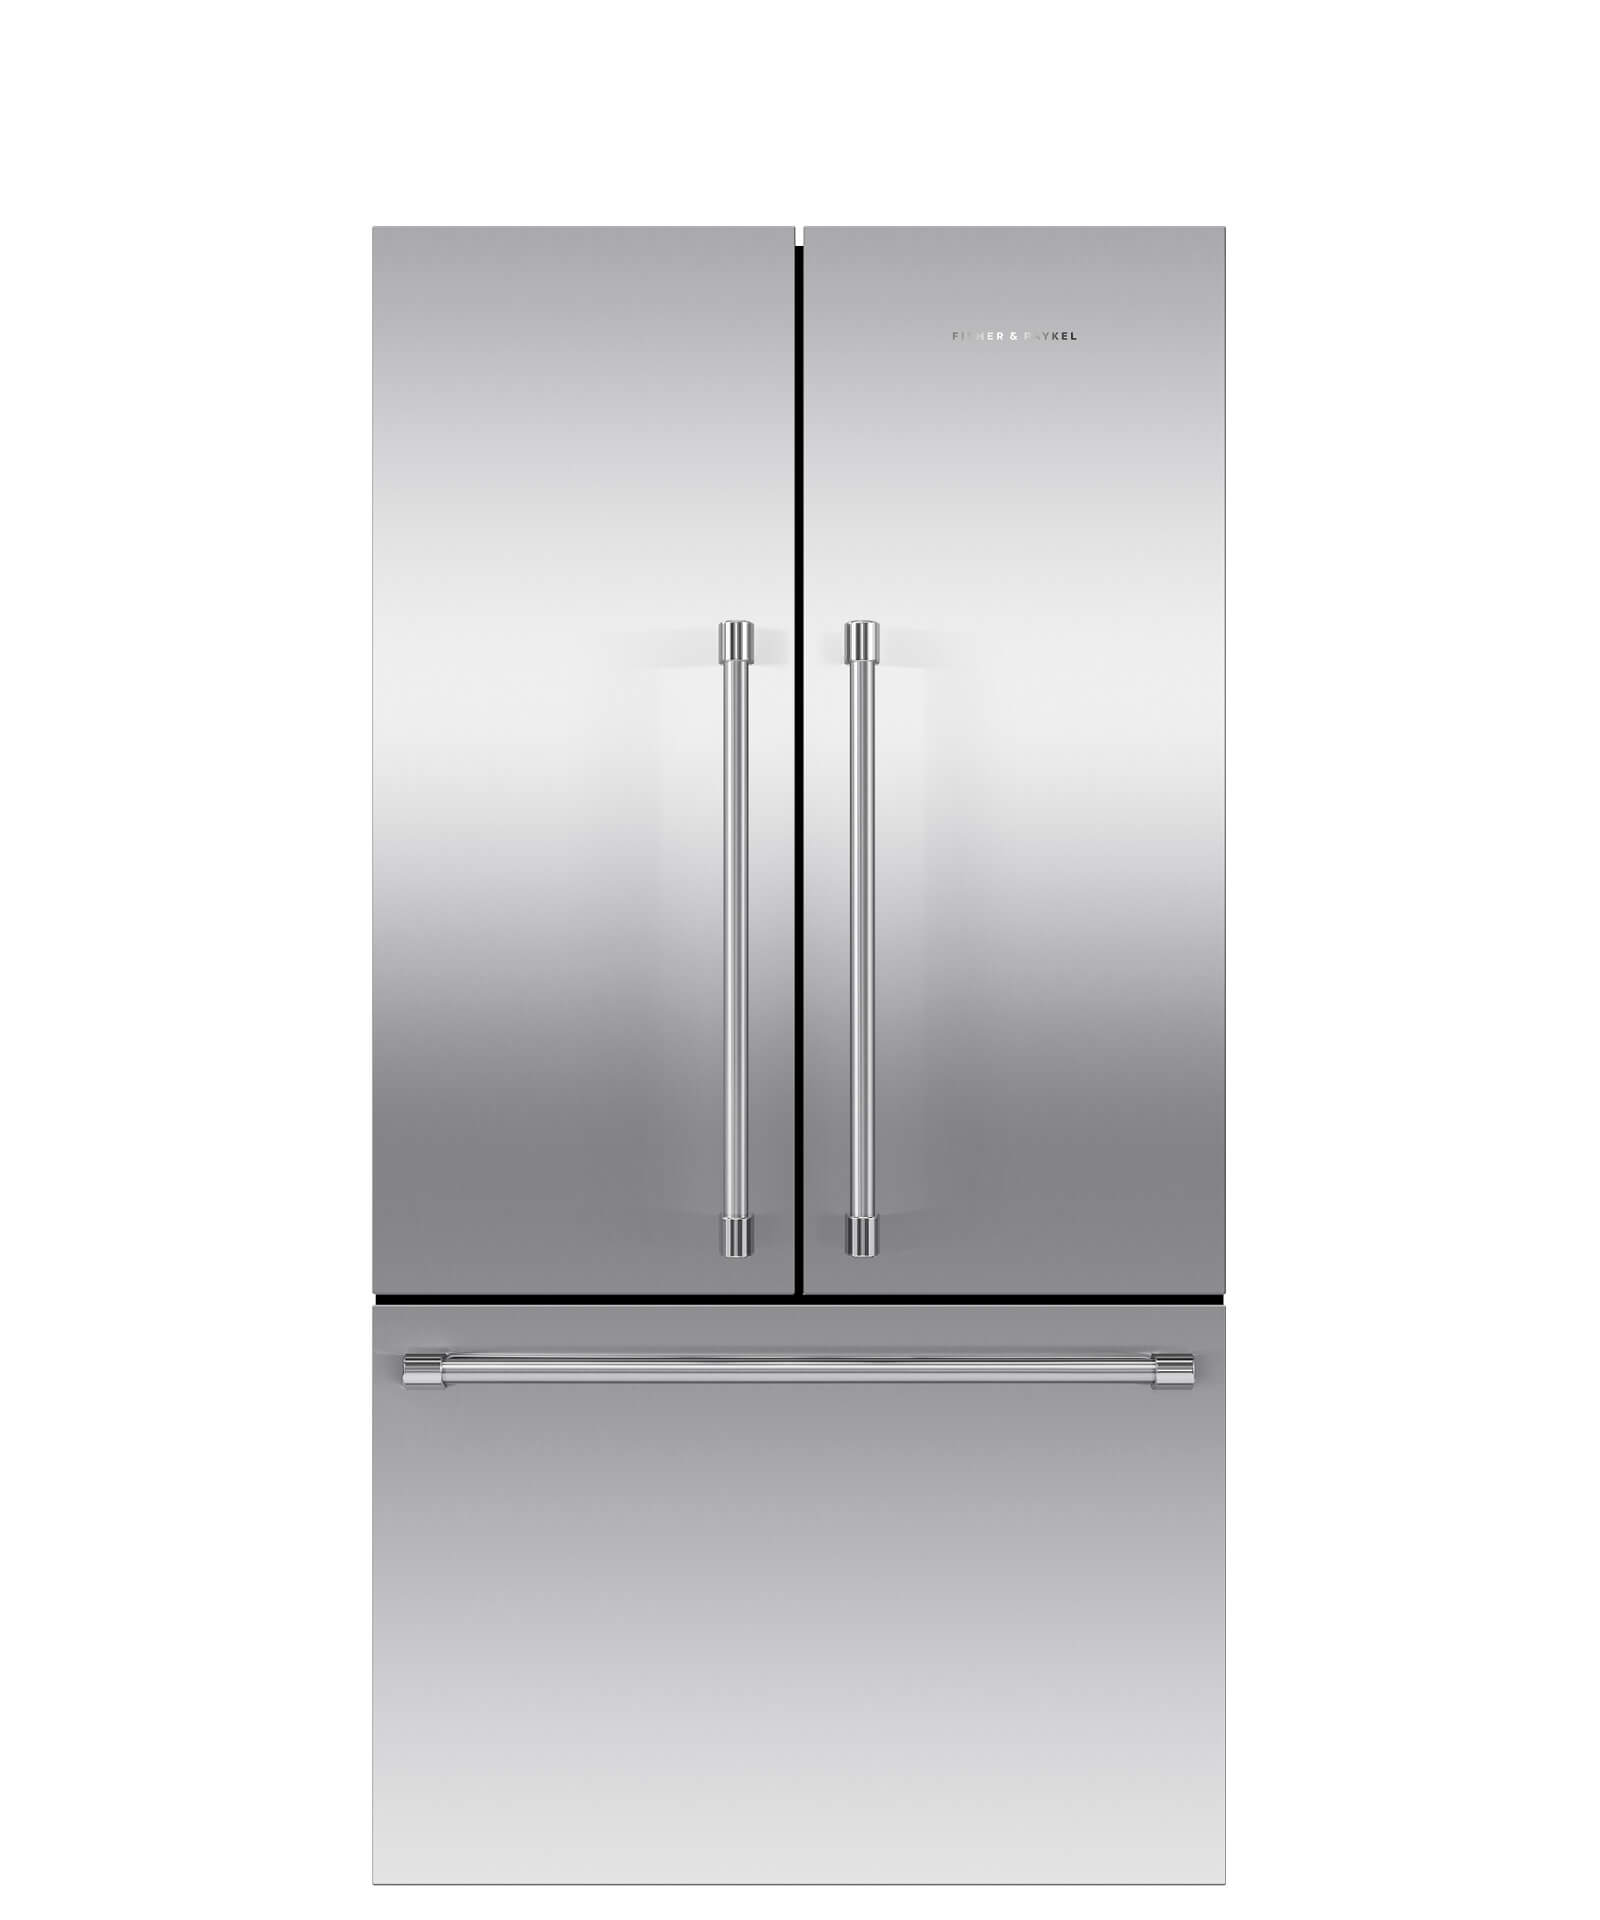 Fisher and Paykel French Door Refrigerator 20.1 cu ft, Ice